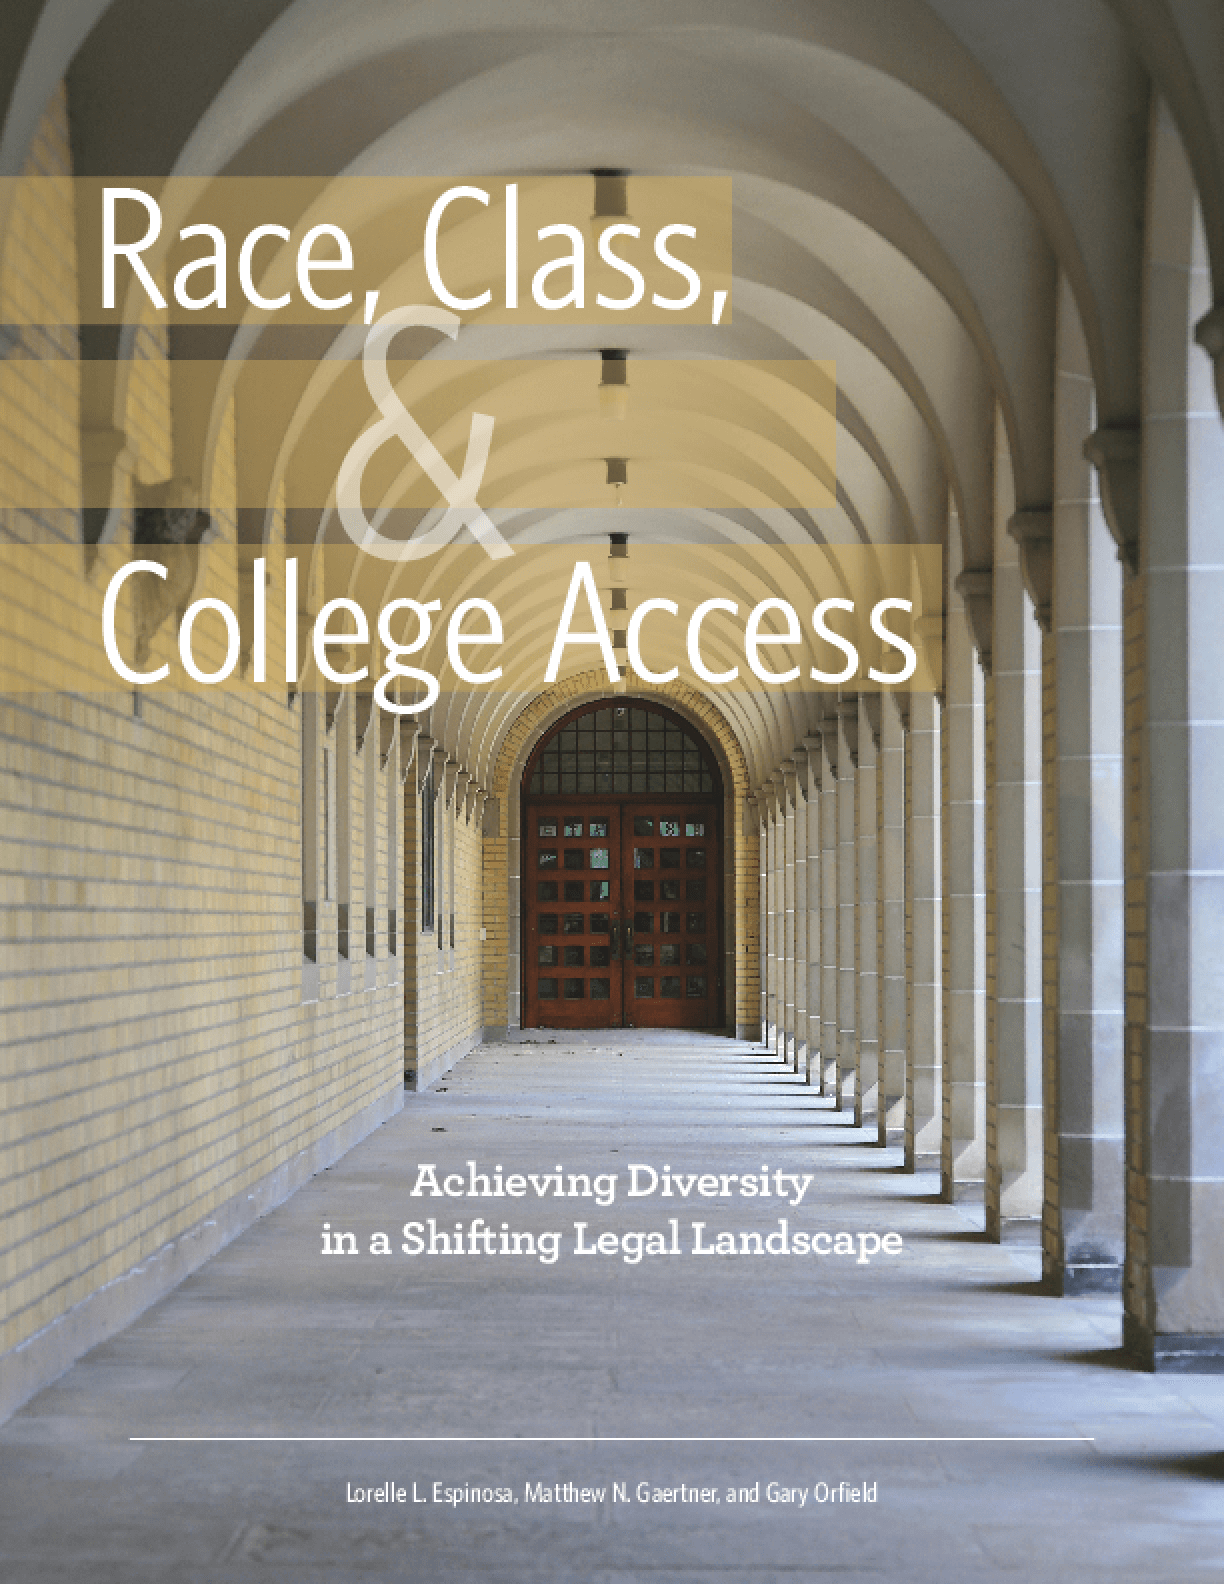 Race, Class, and College Access: Achieving Diversity in a Shifting Legal Landscape